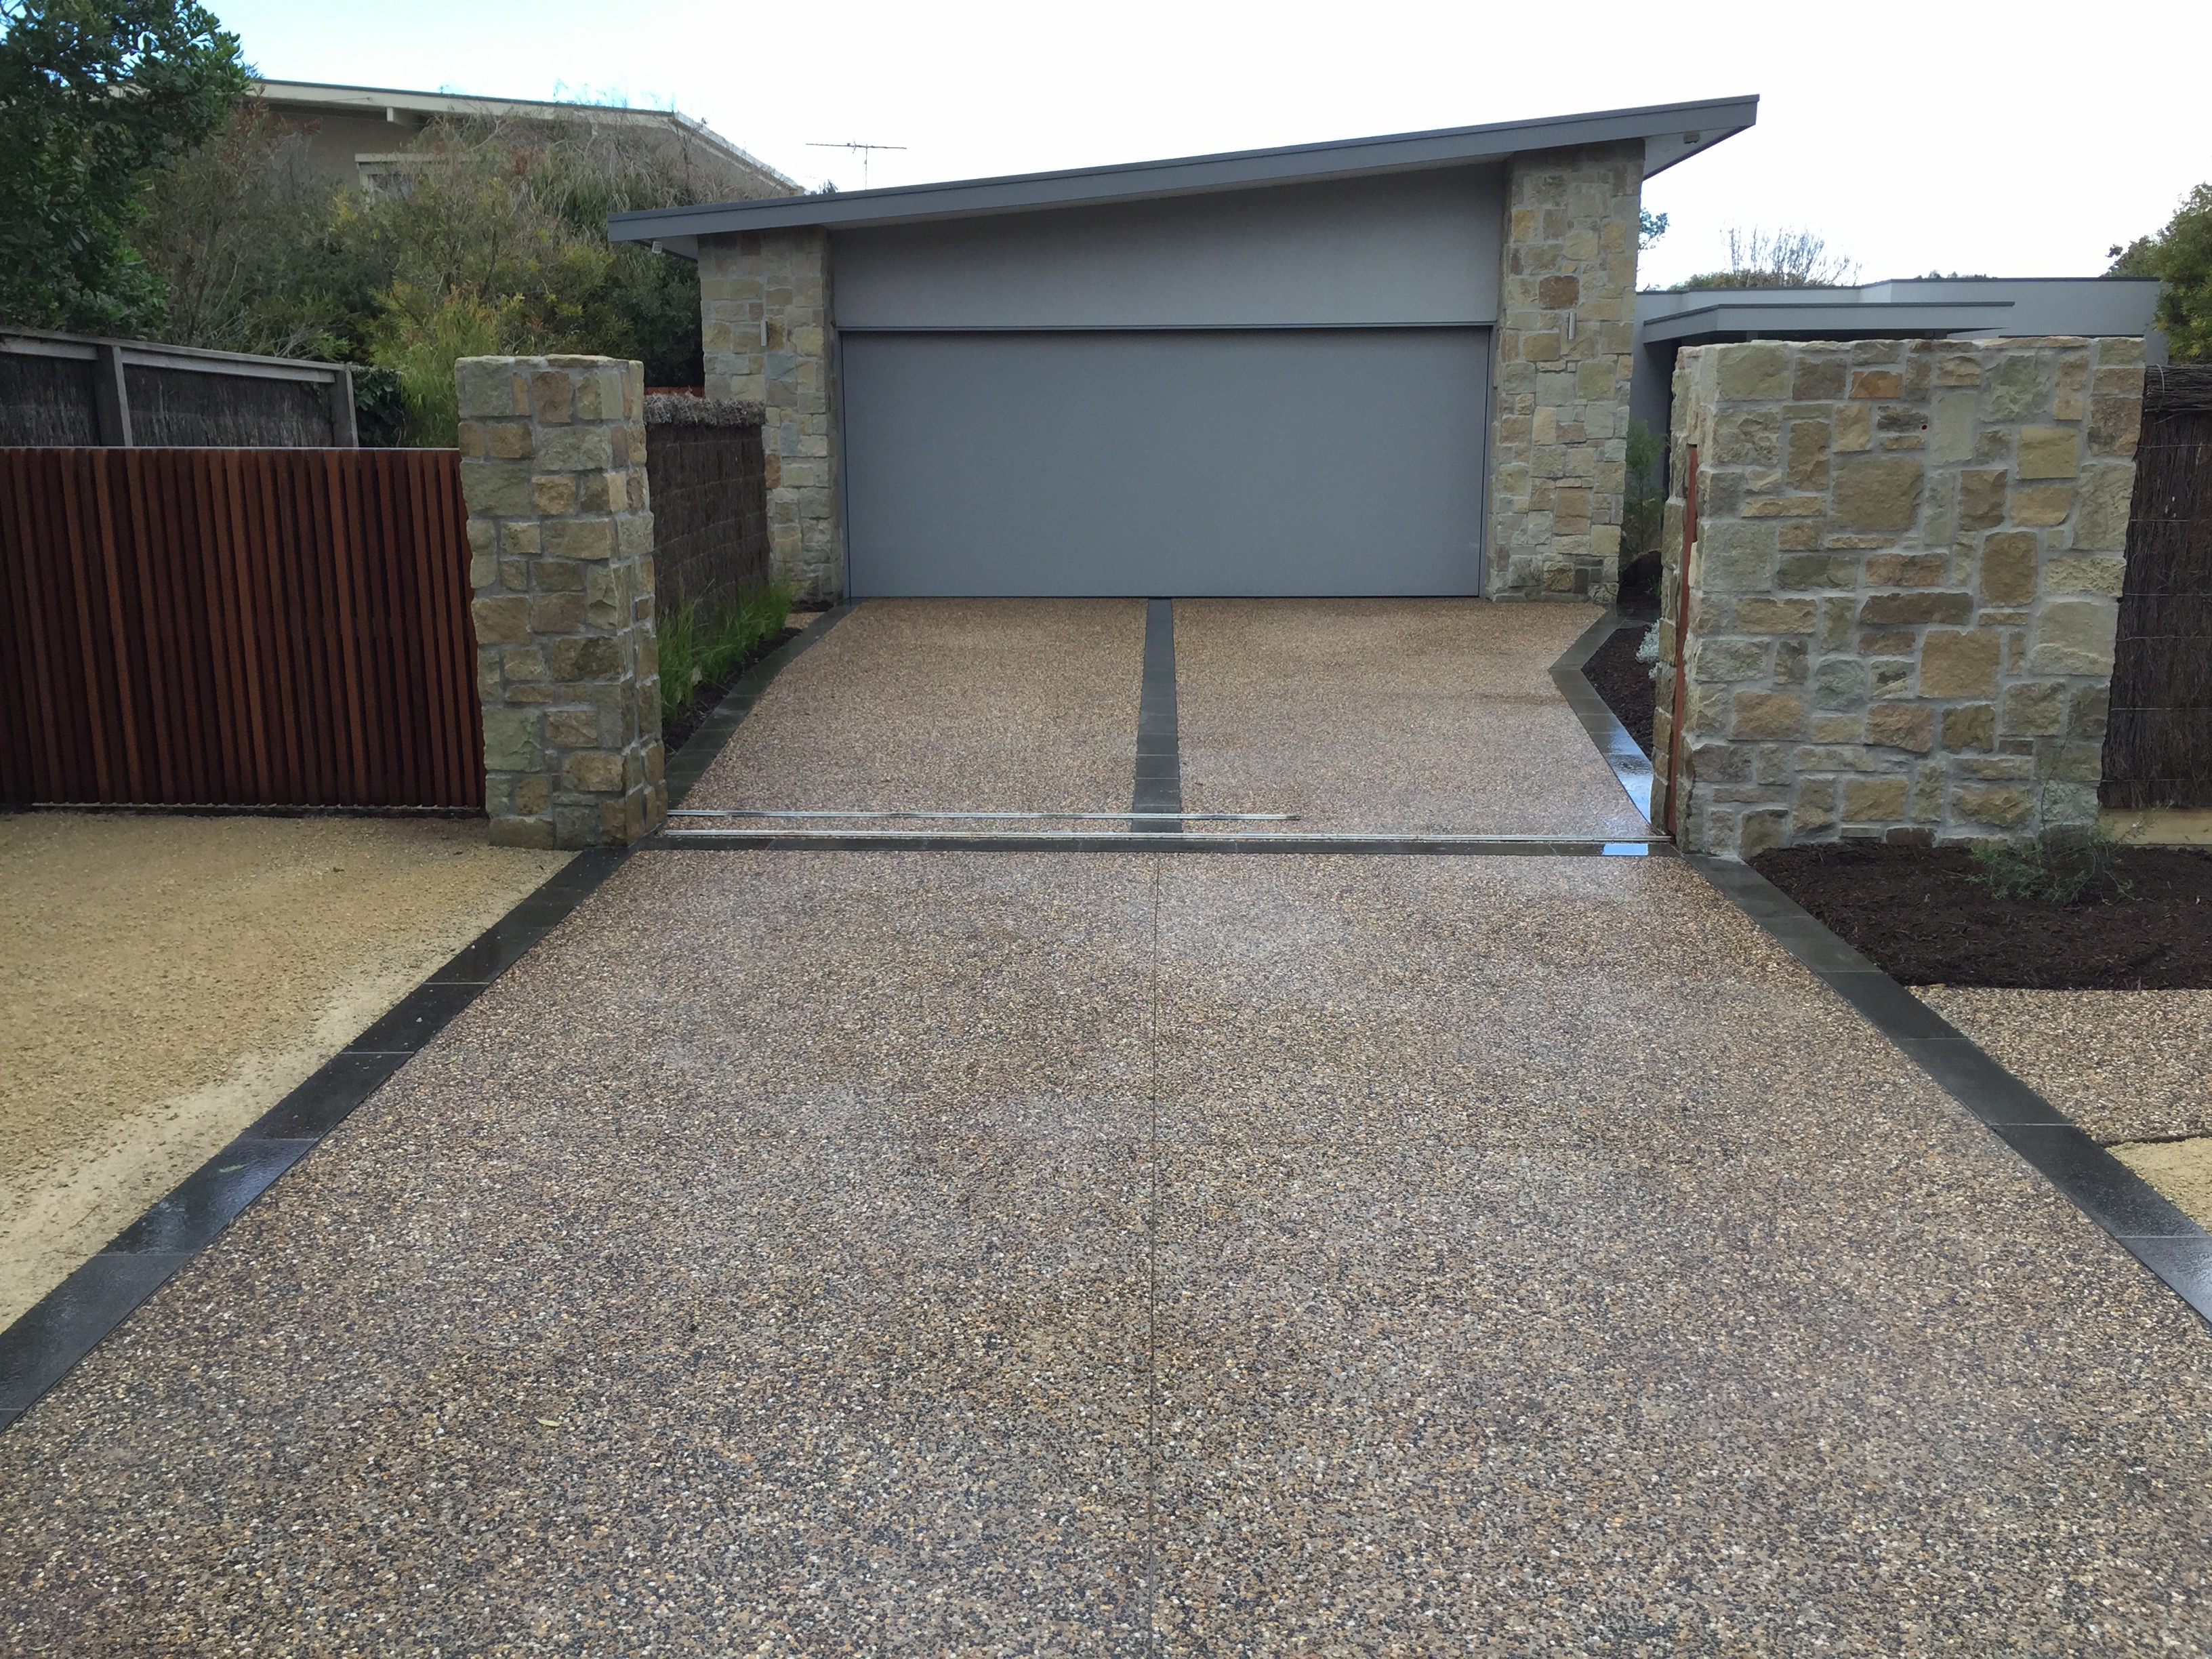 Blairgowrie design and landscape